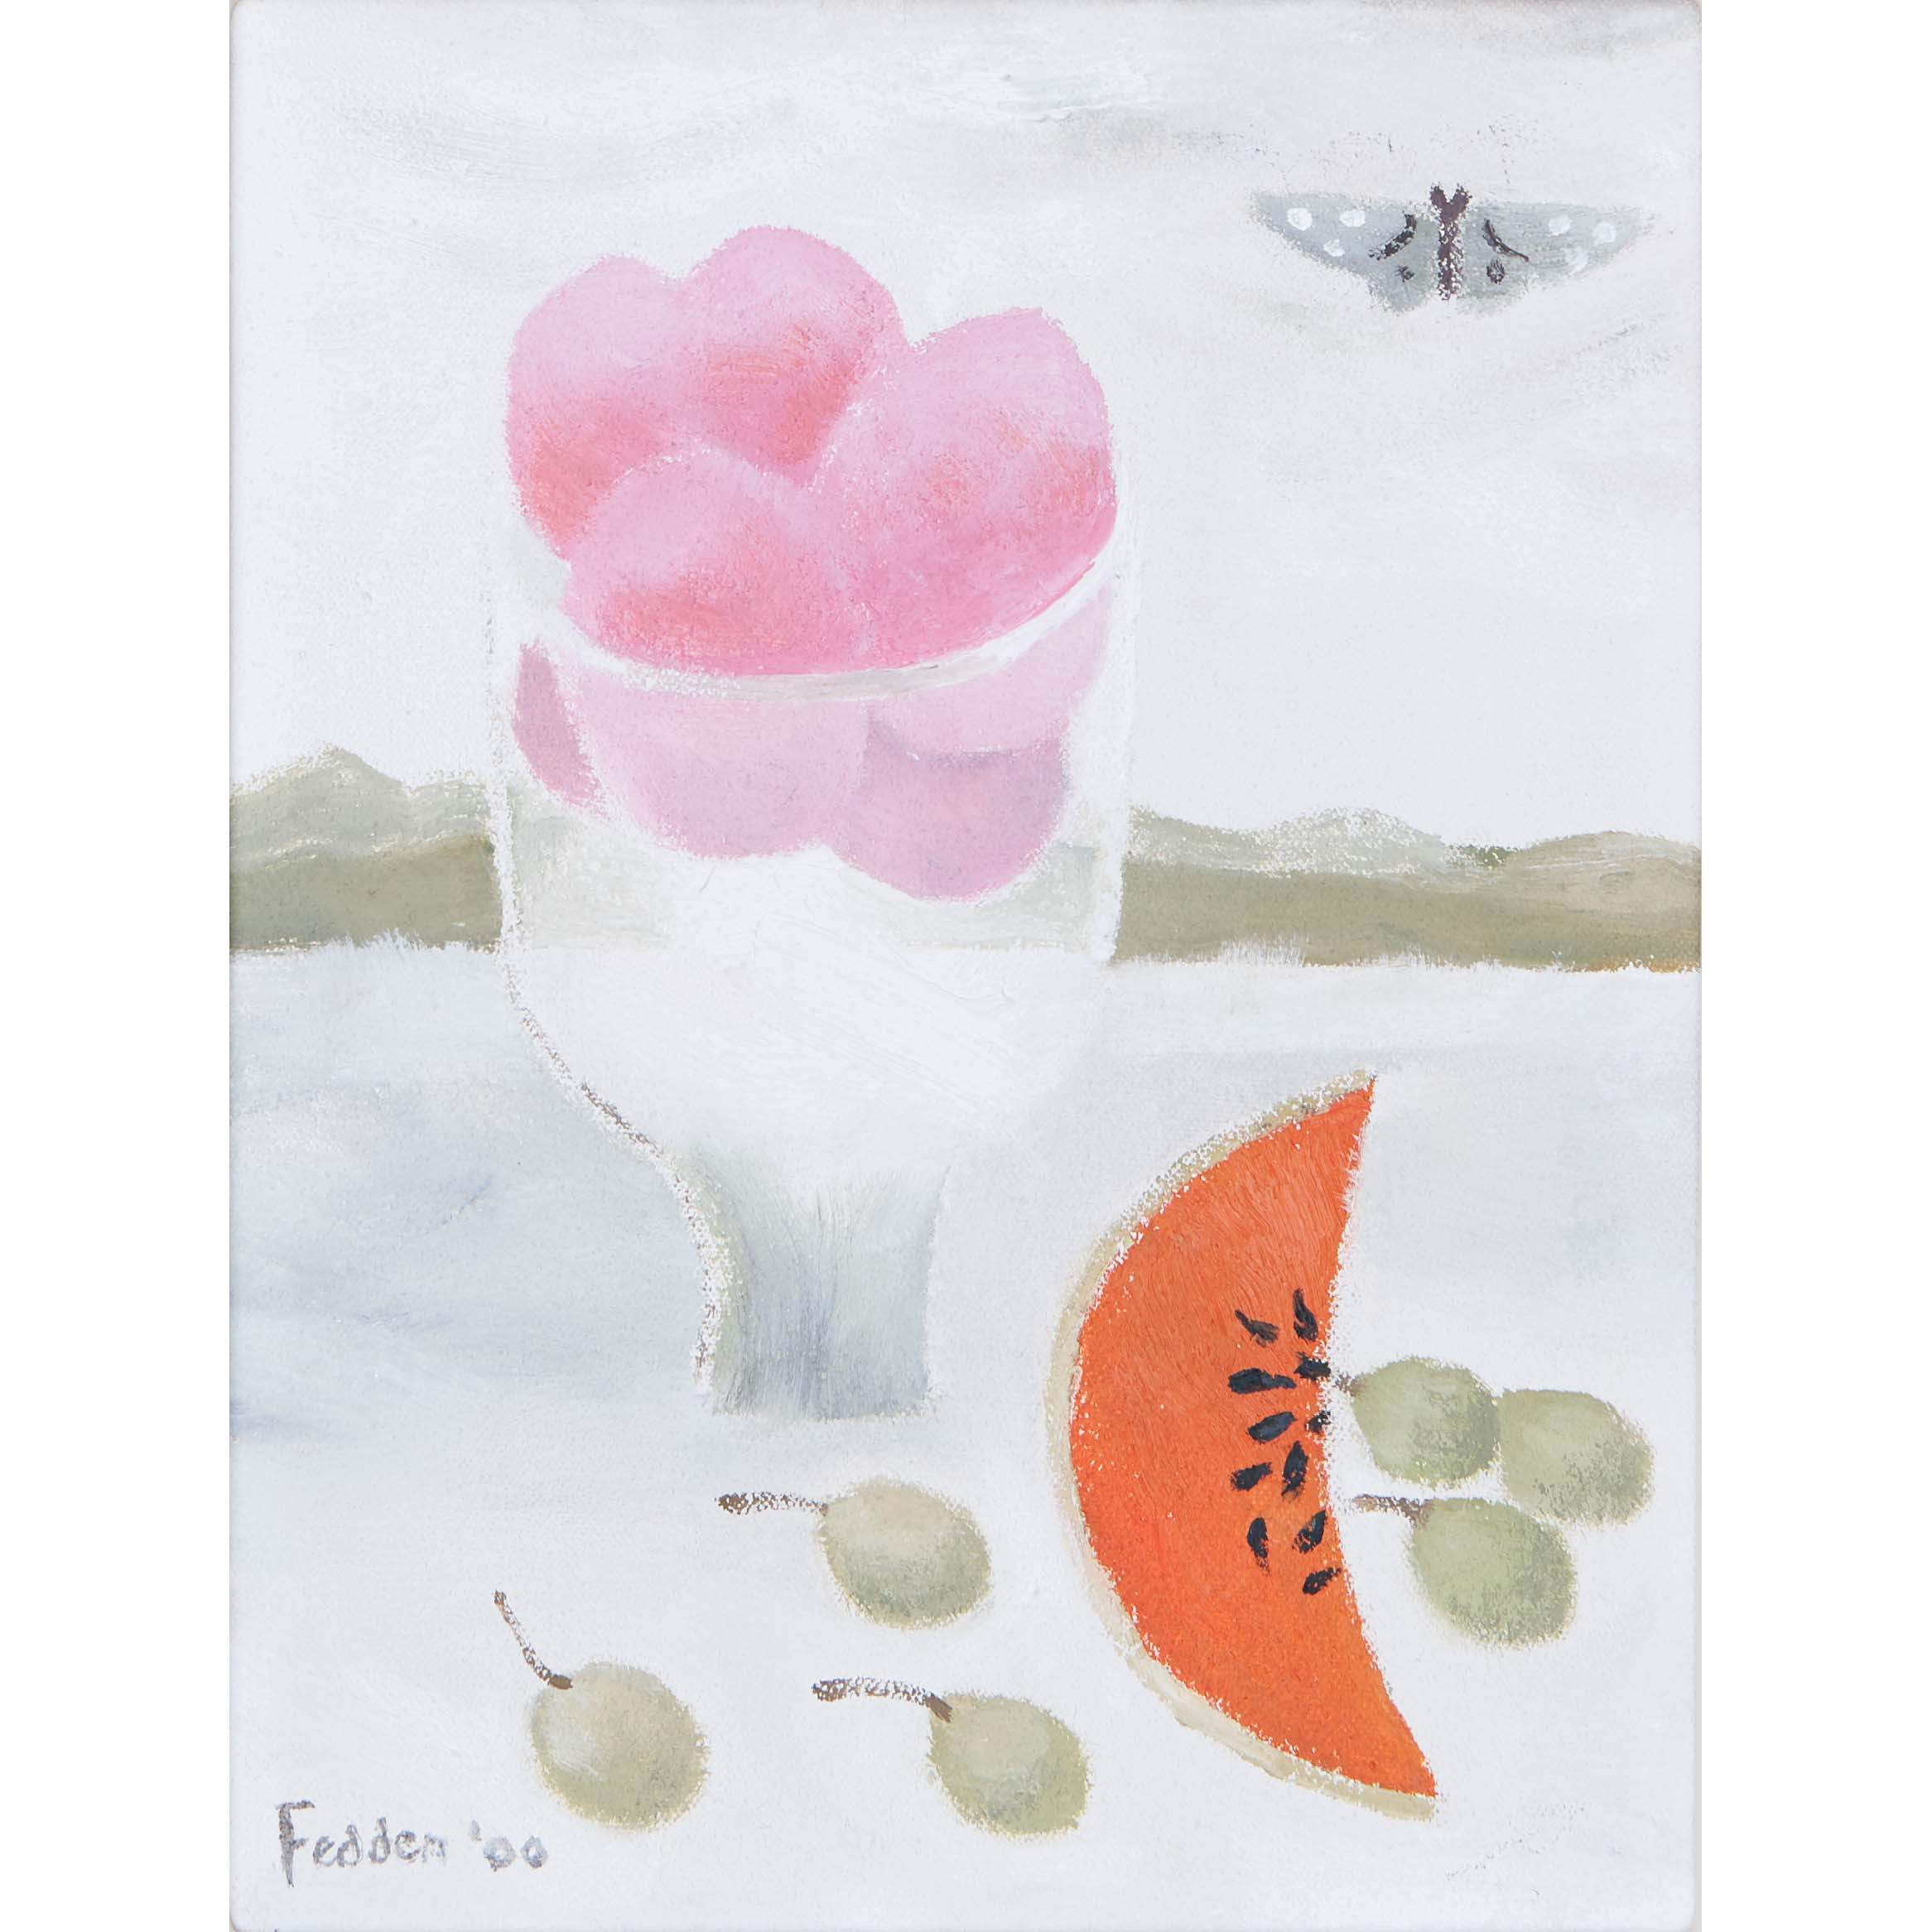 MARY FEDDEN. MELON. 2000